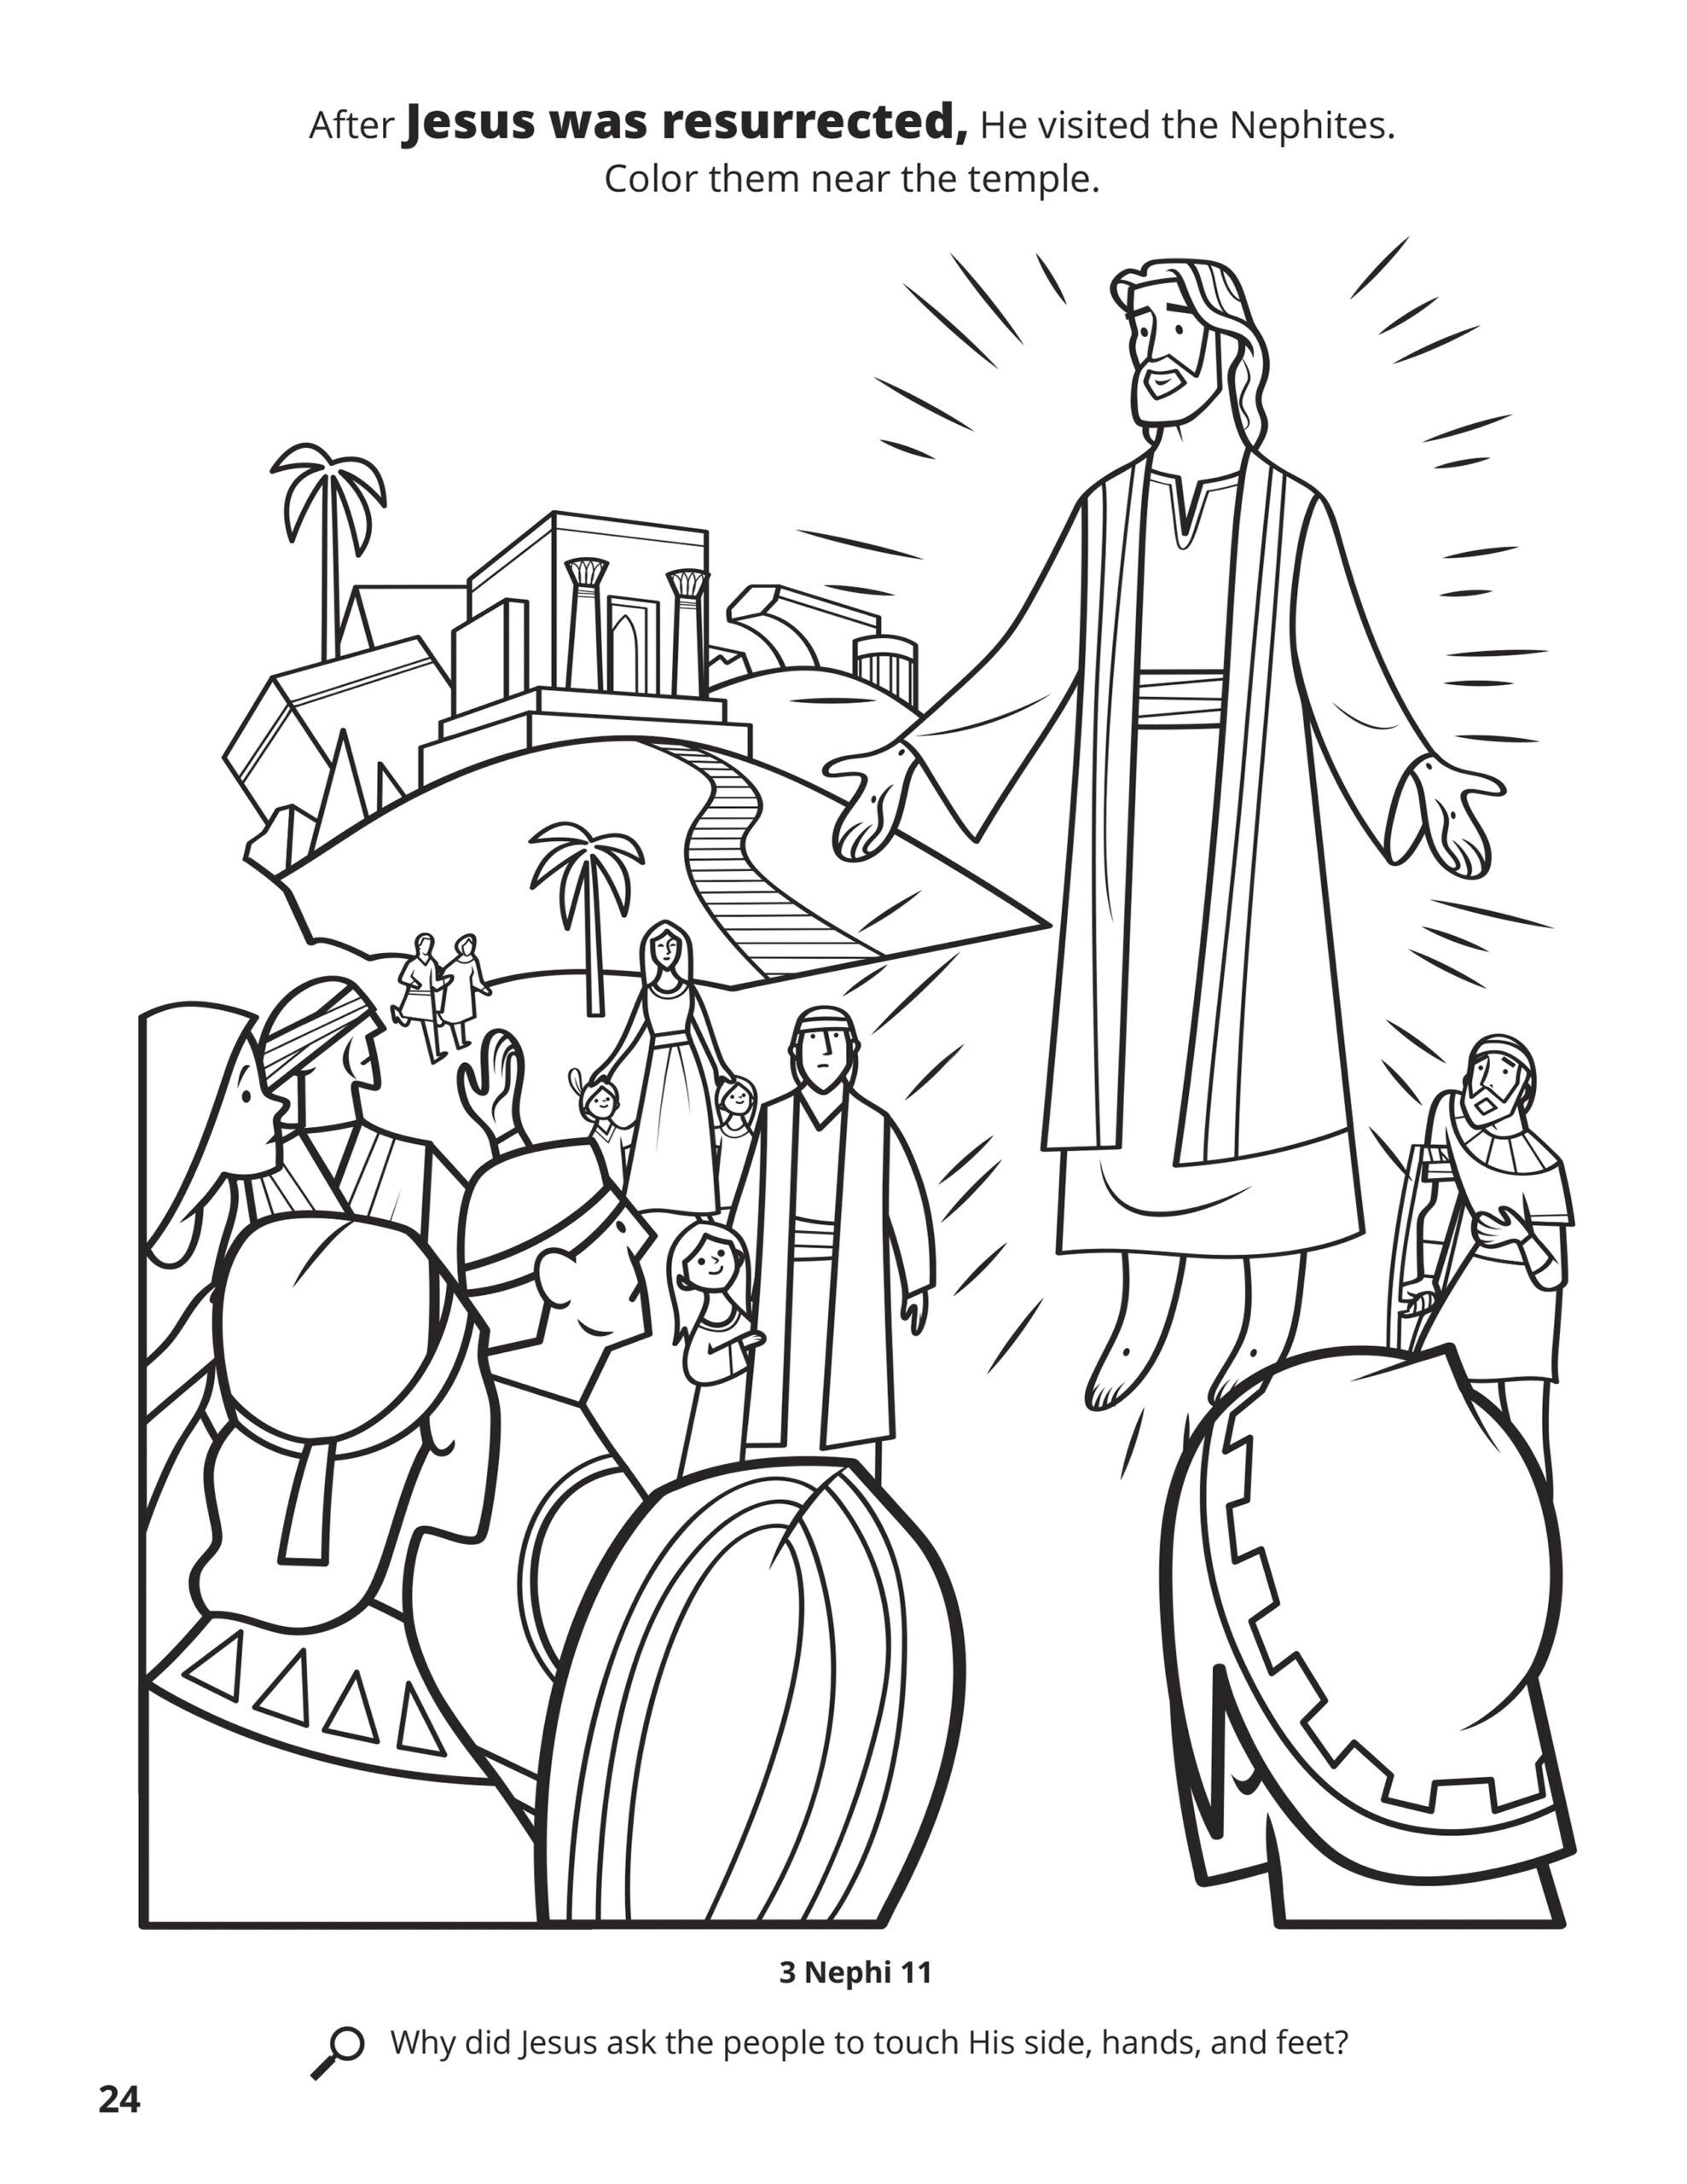 Best Picture Coloring Pages For Jesus Resurrection Lds Coloring Pages Coloring Books Lds Resurrection